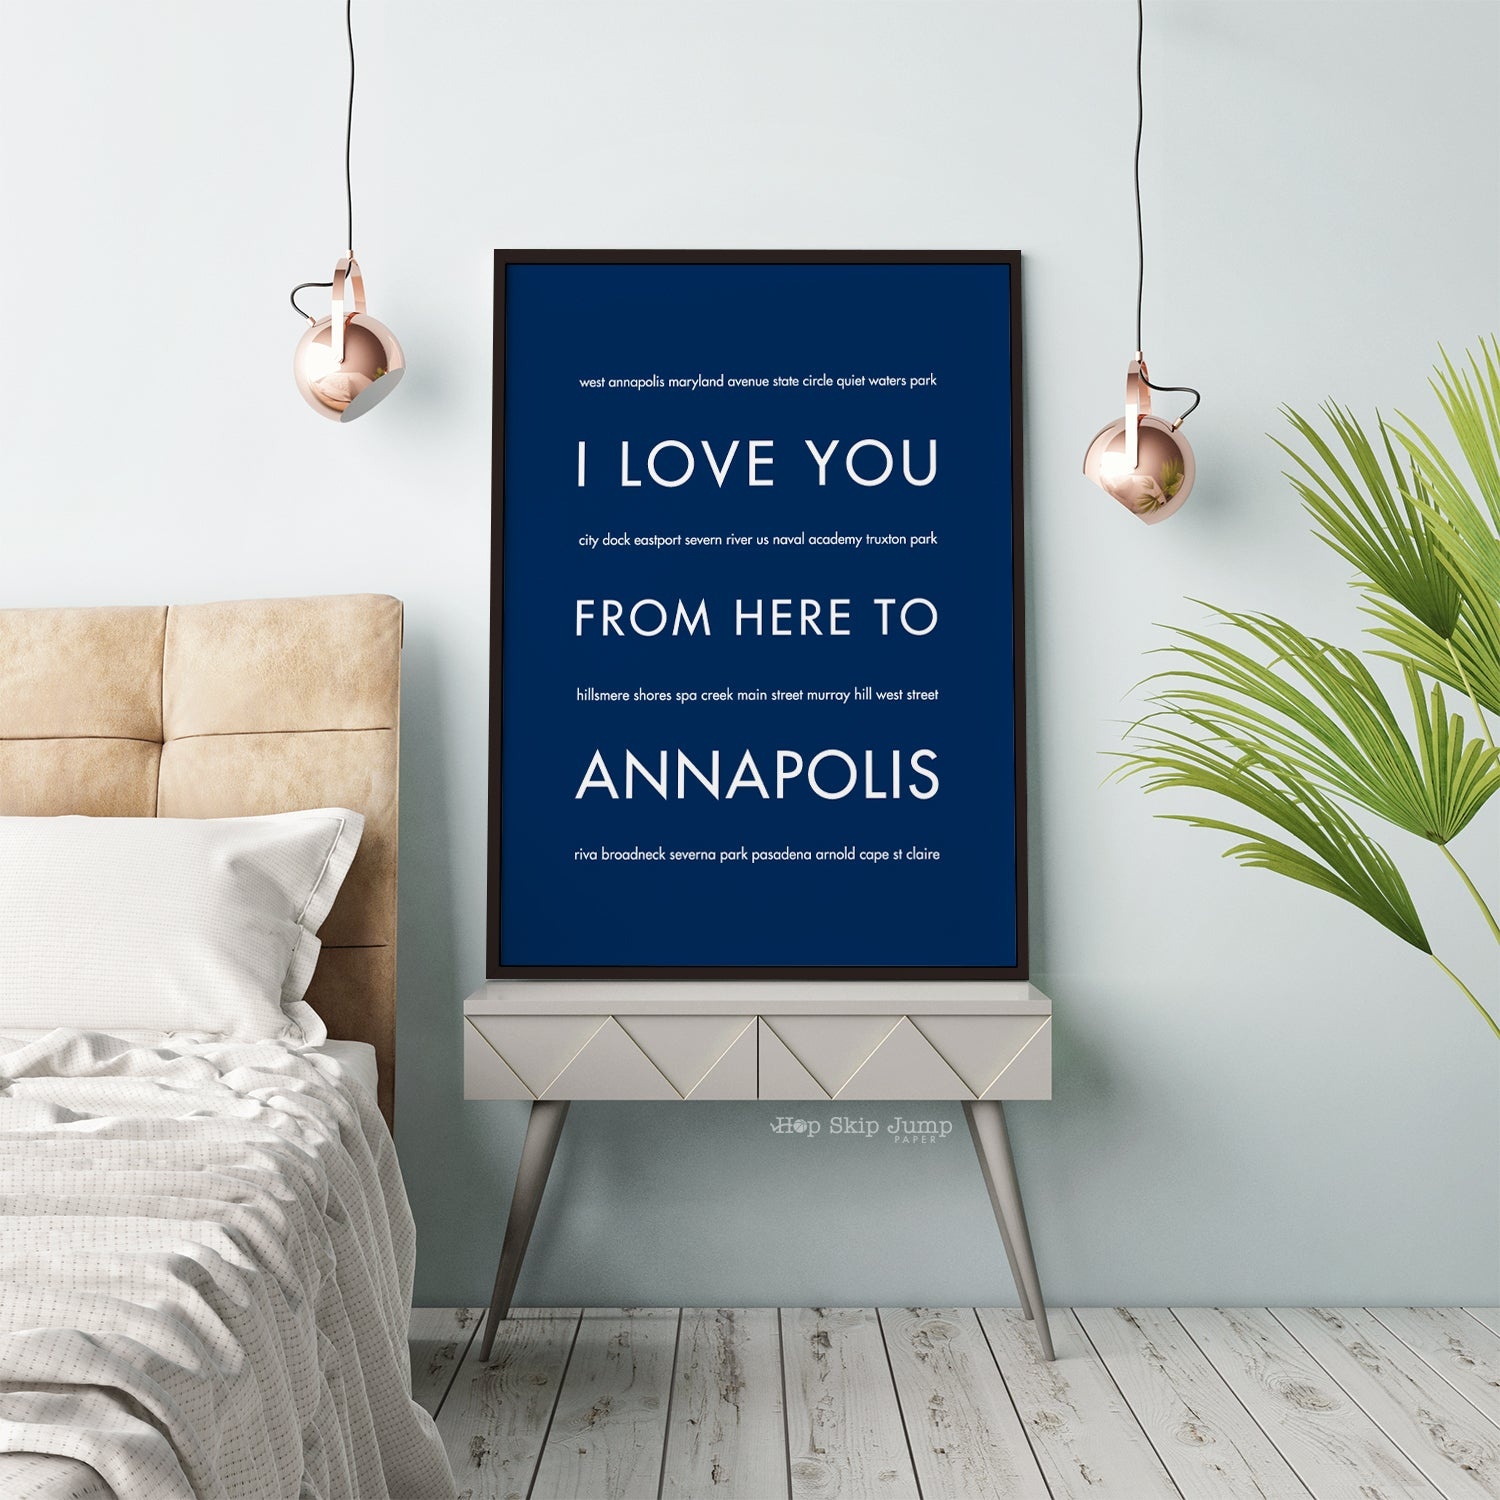 ANNAPOLIS City Wall Art | Gift Idea | HopSkipJumpPaper